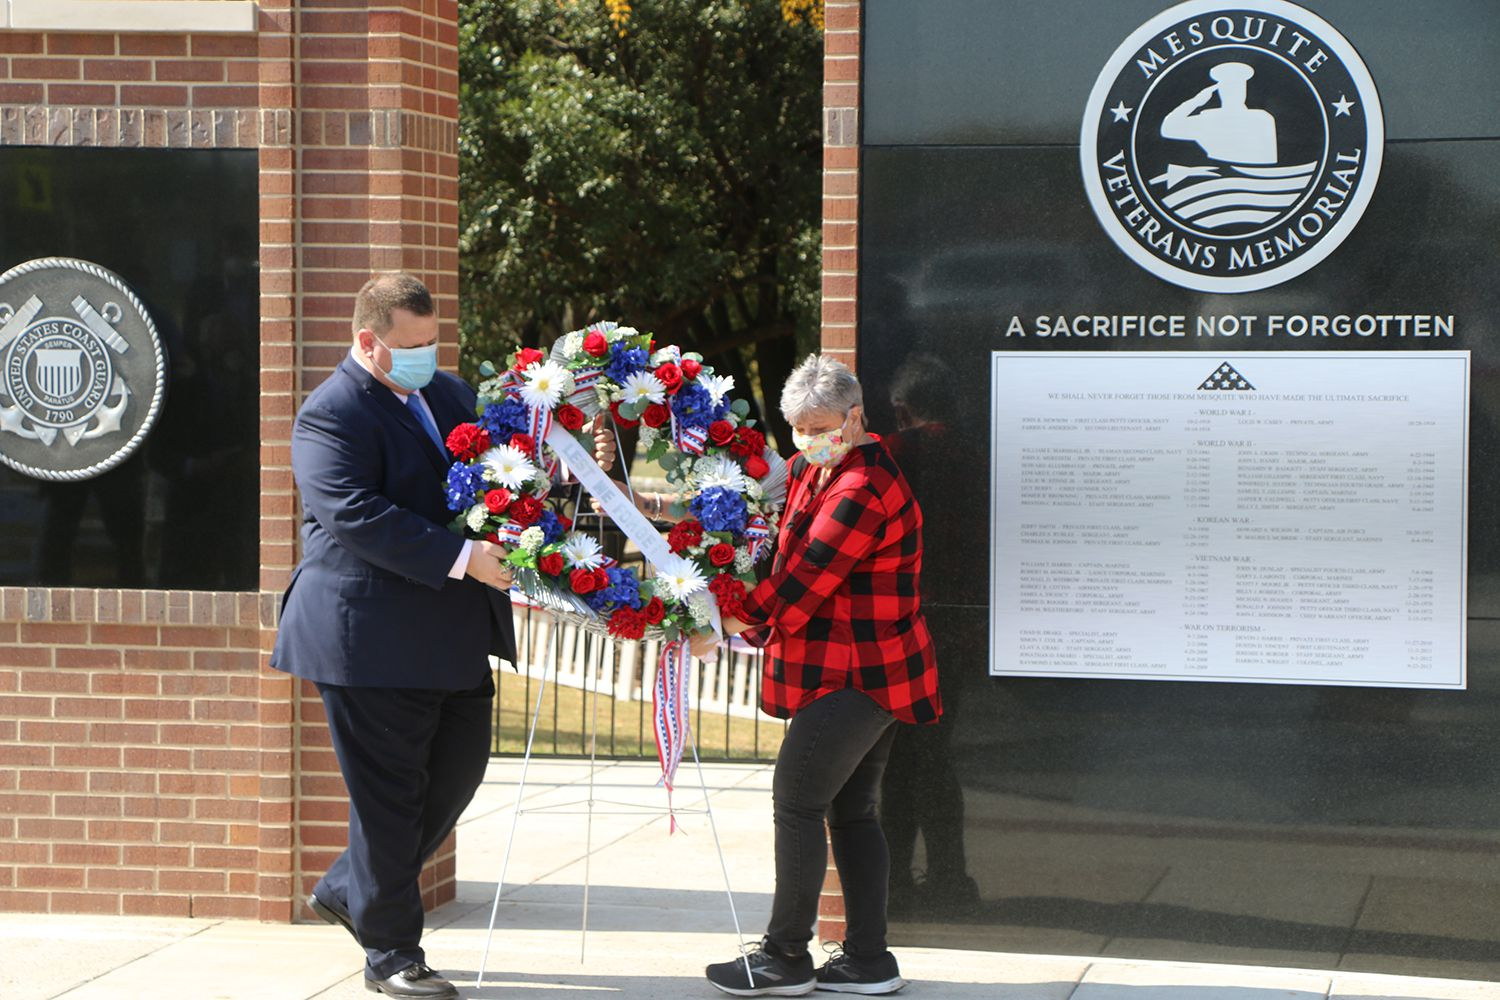 Mesquite Mayor Bruce Archer and Gold Star mother Mary Border laid a wreath at the Mesquite Veterans Memorial in November. The mayor said this week he had tested positive for COVID-19.